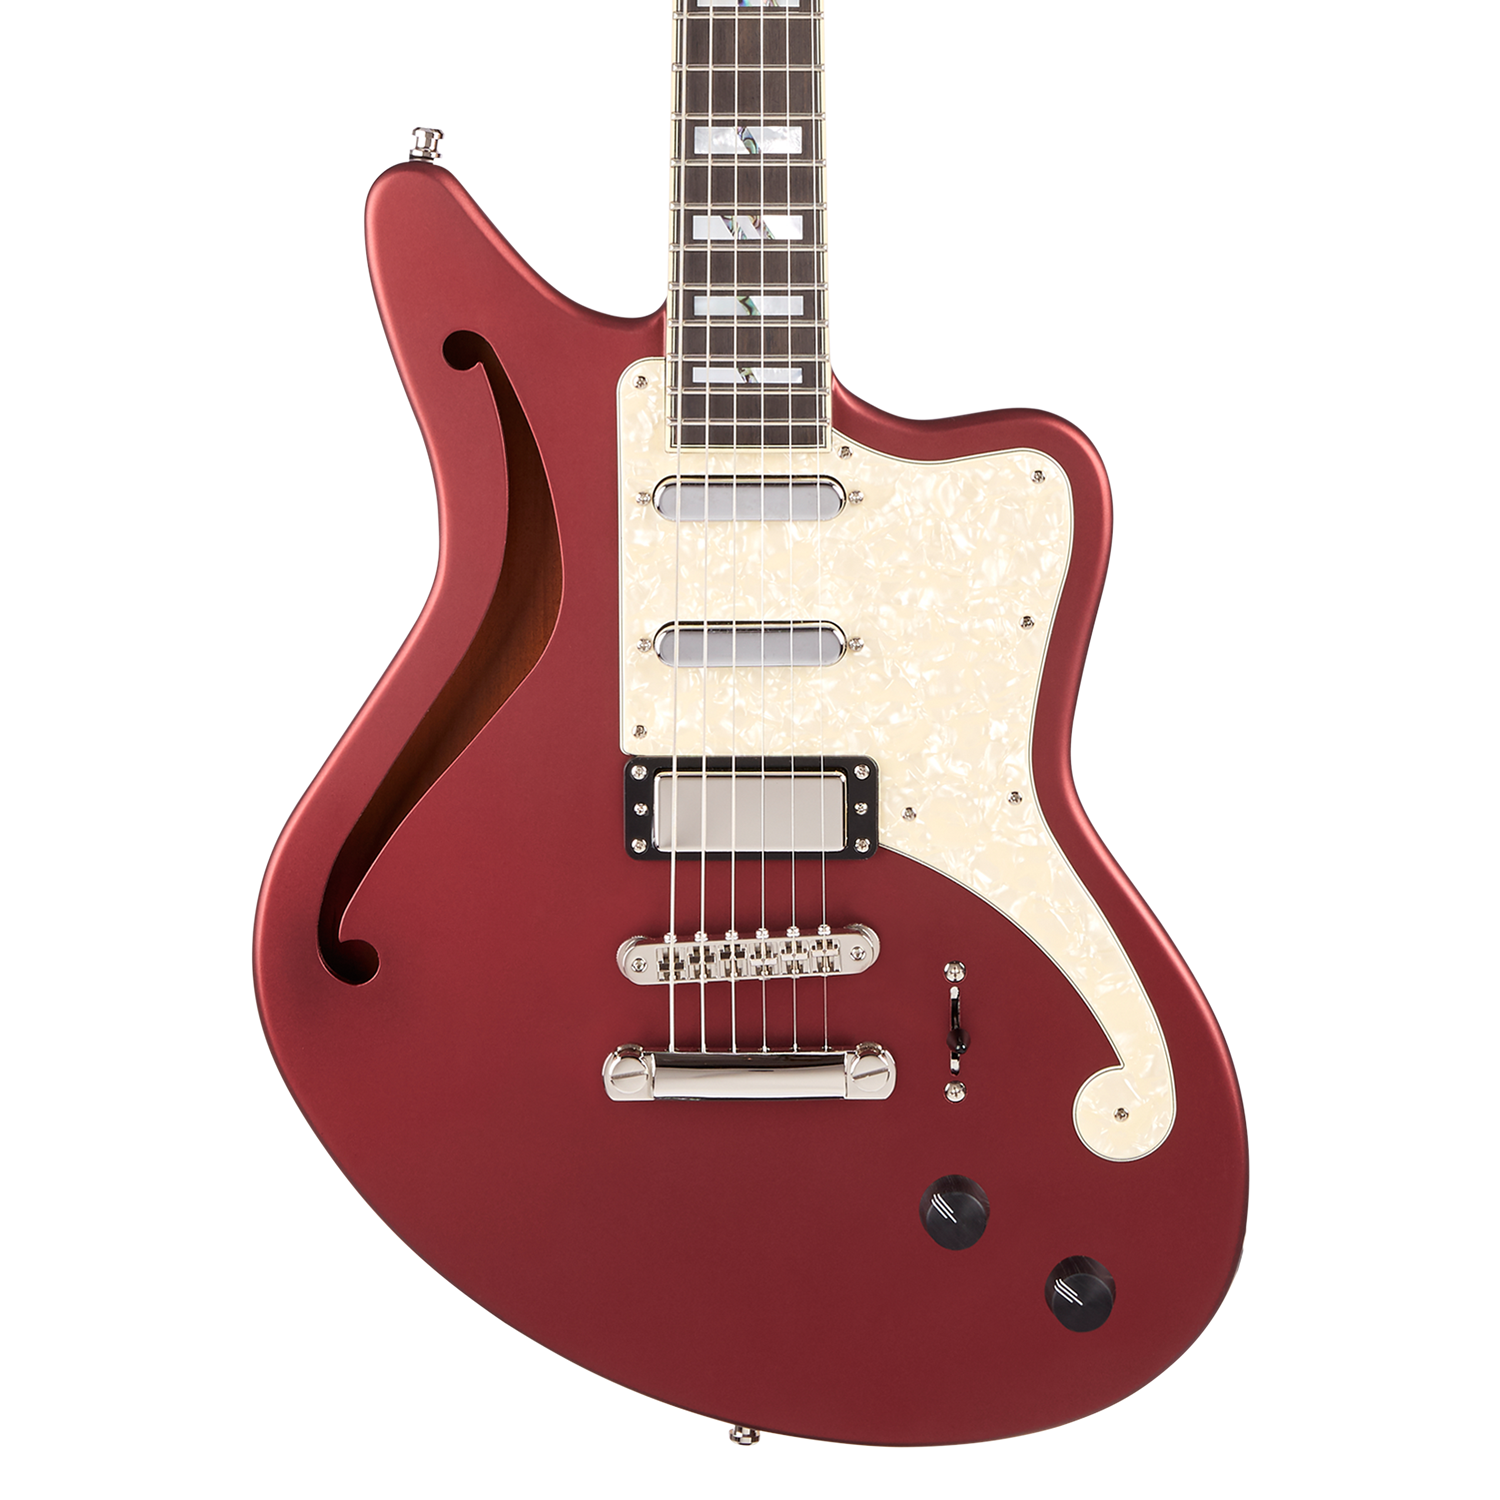 D'Angelico Deluxe Bedford SH Limited Edition - Matte Wine